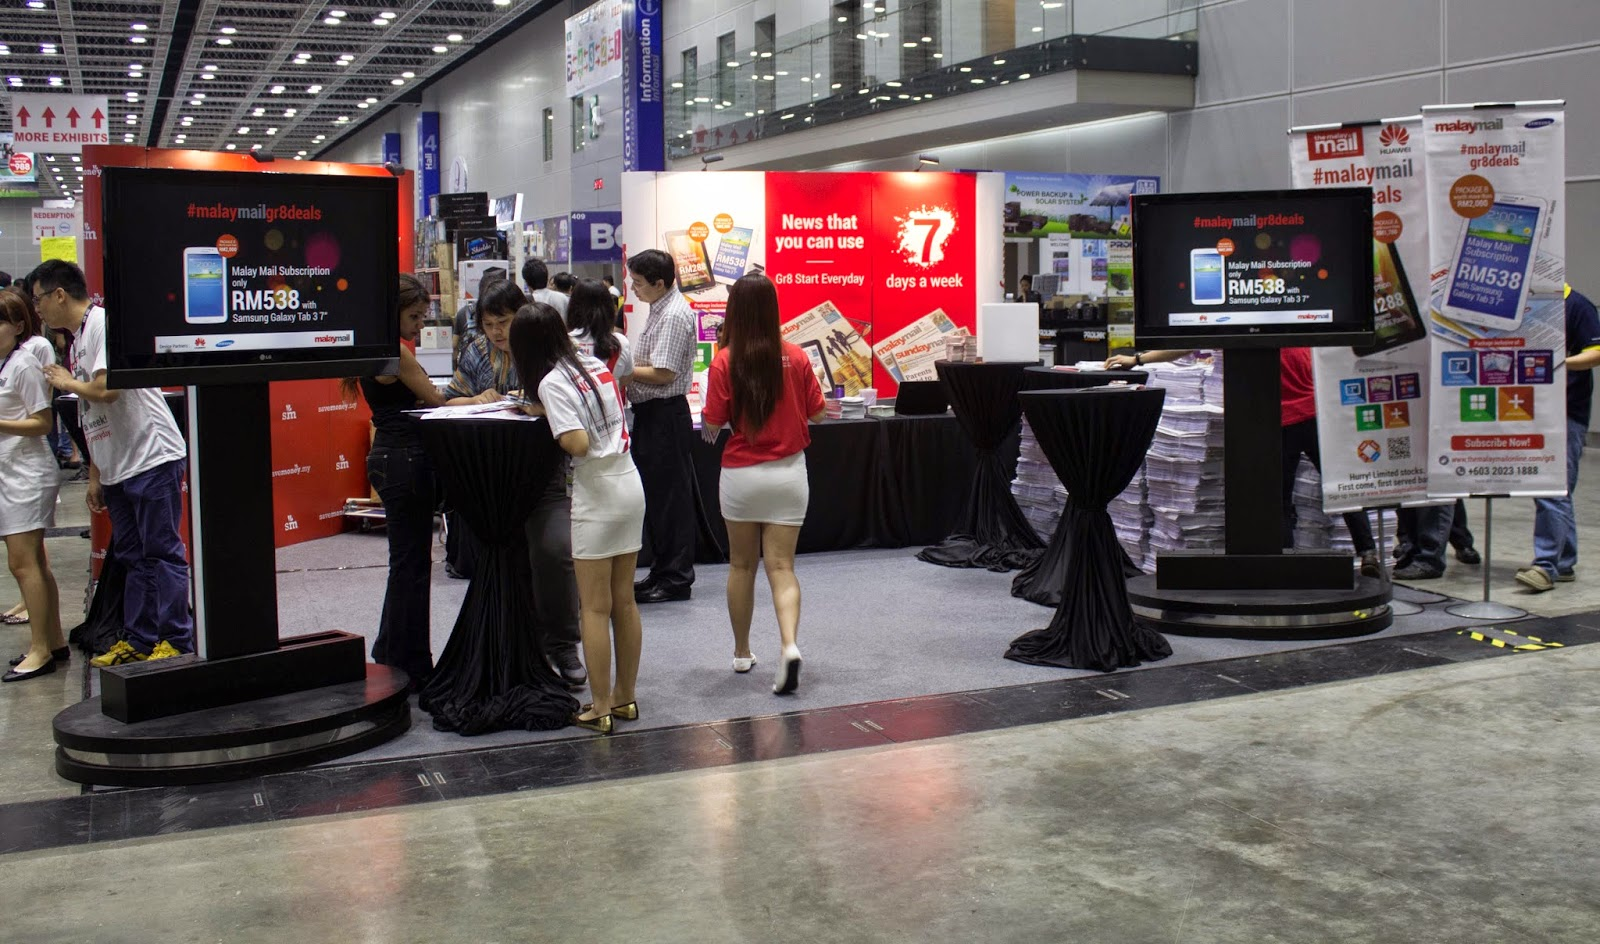 Coverage of PIKOM PC Fair 2014 @ Kuala Lumpur Convention Center 364